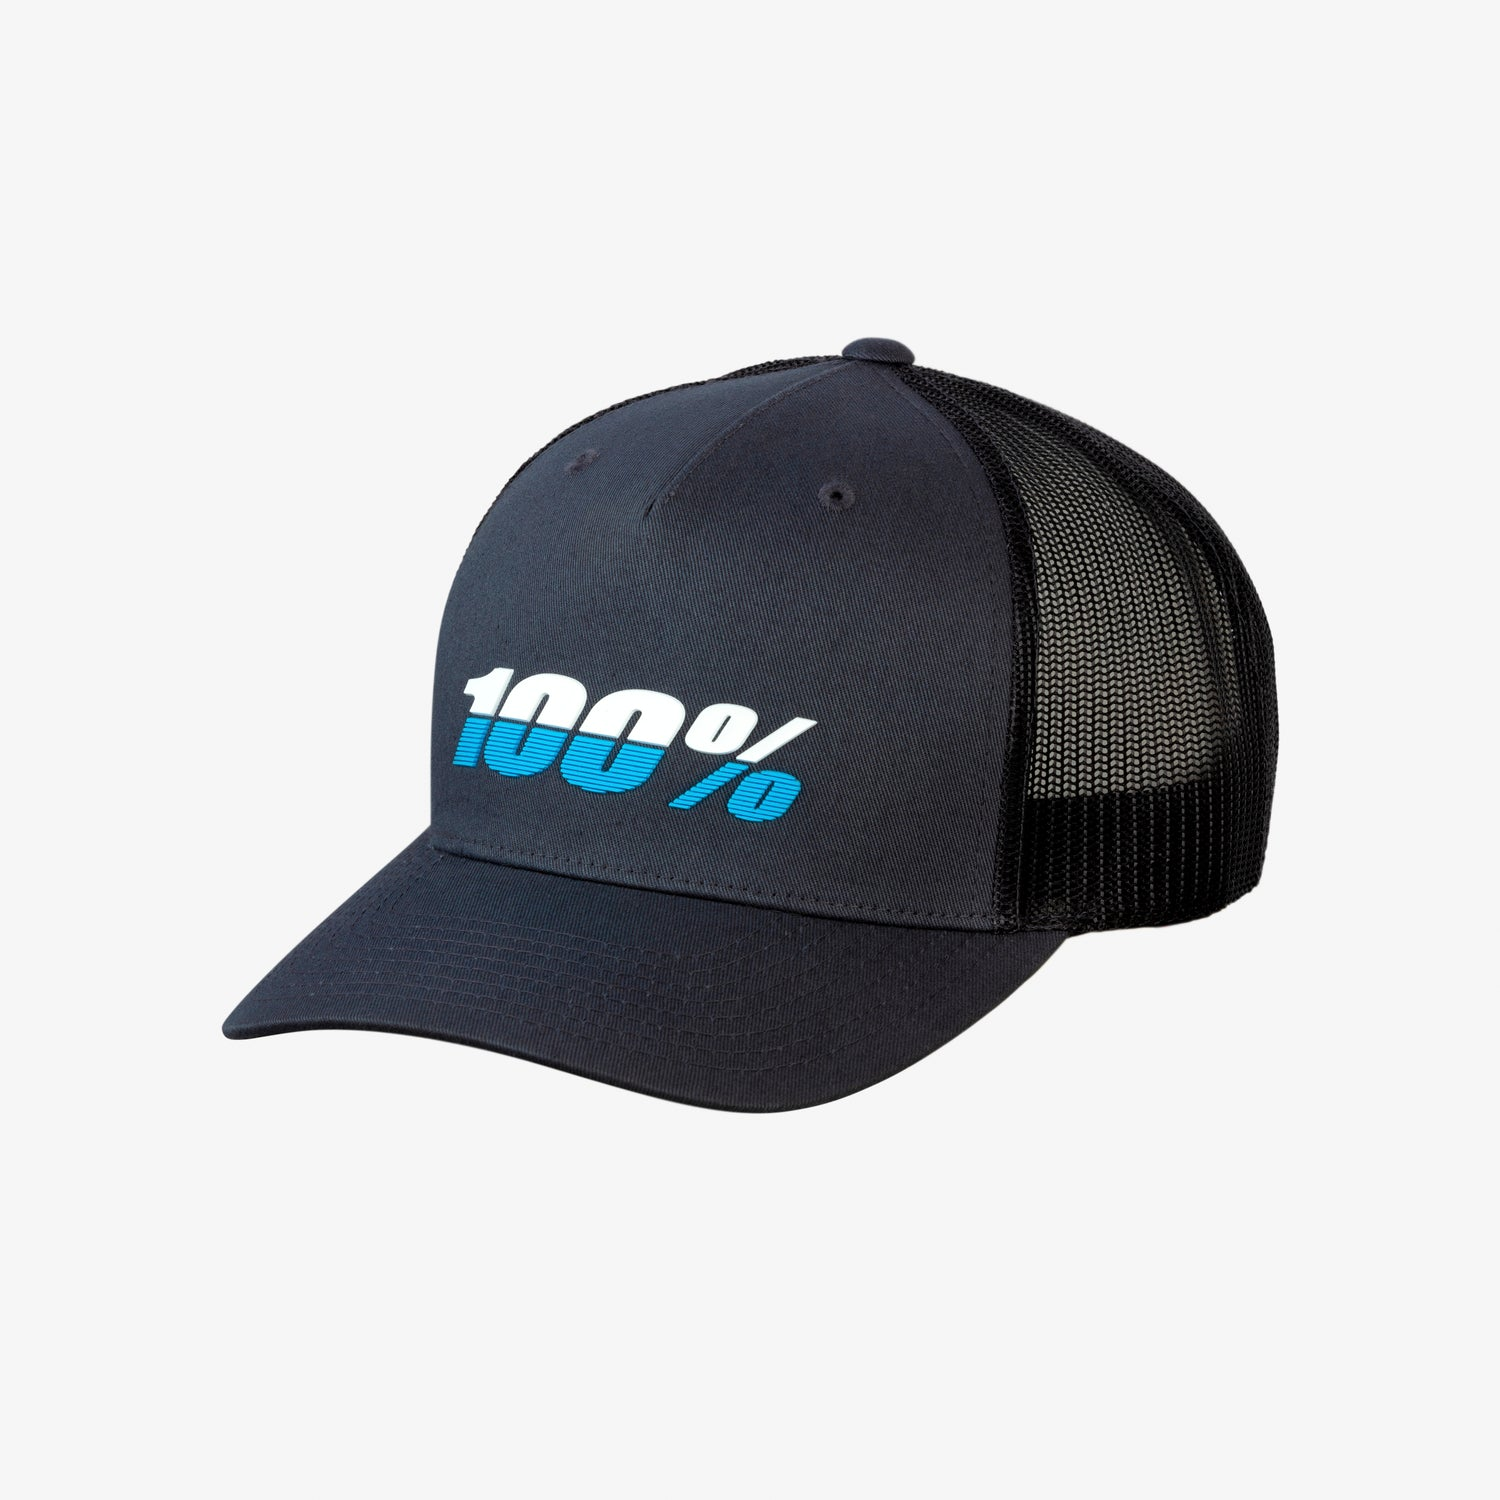 LEAGUE X-Fit Snapback Hat Charcoal